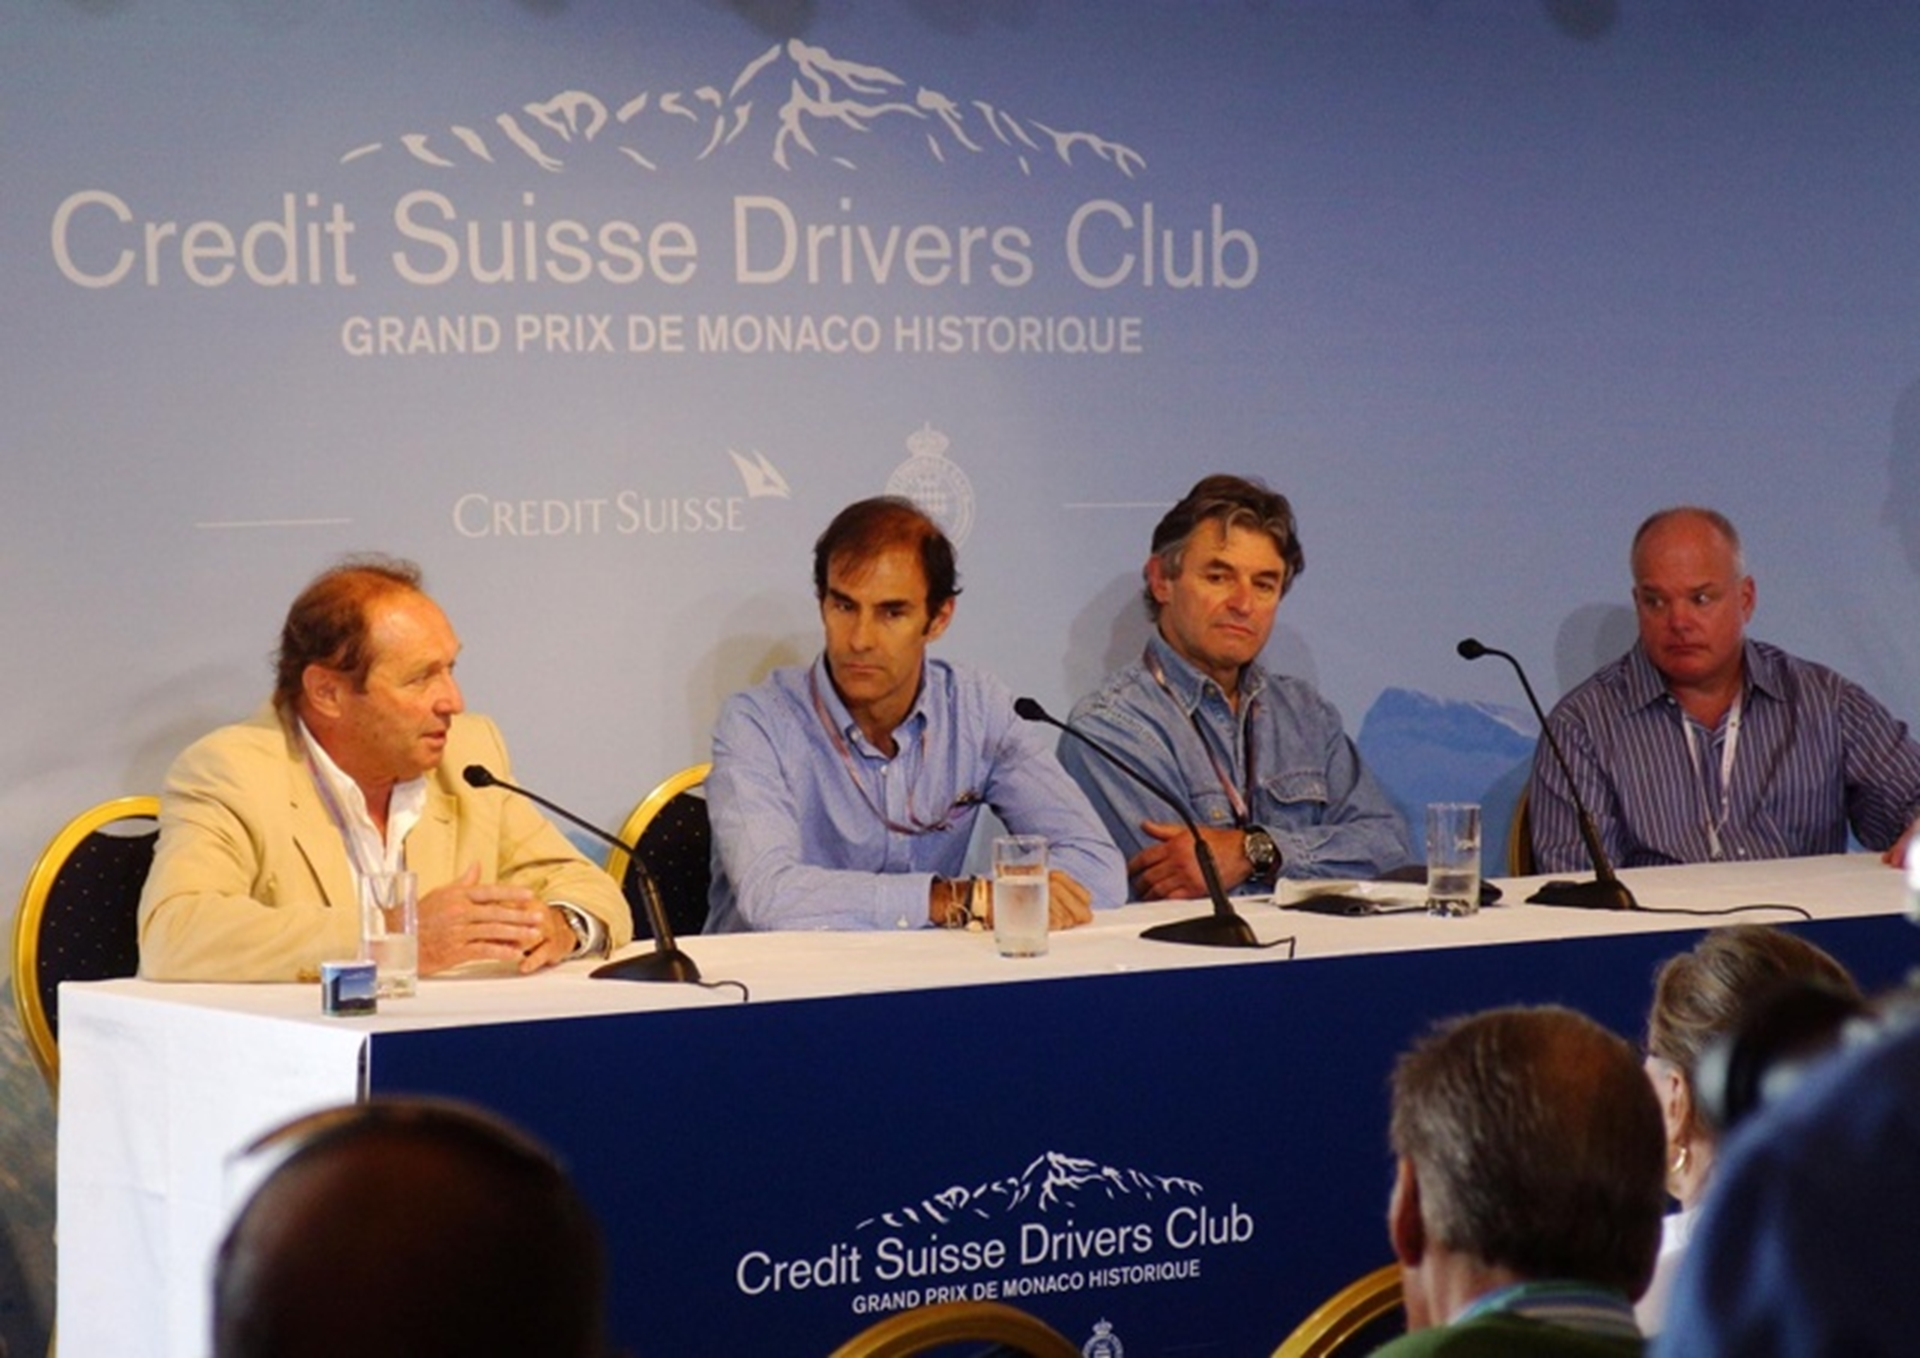 Credit Suisse Drivers